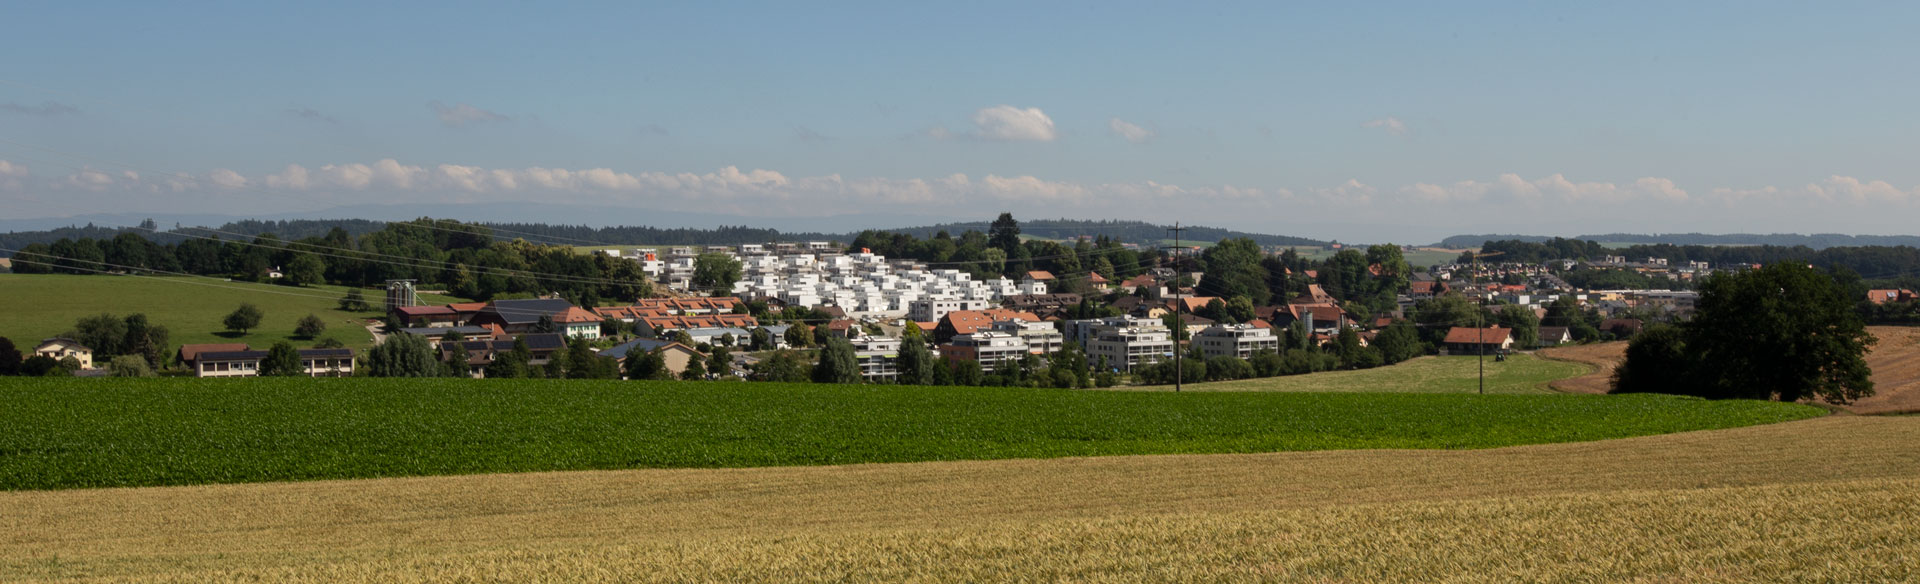 corminboeuf_commune_grand_fribourg_ete_2018_mg_1002.jpg